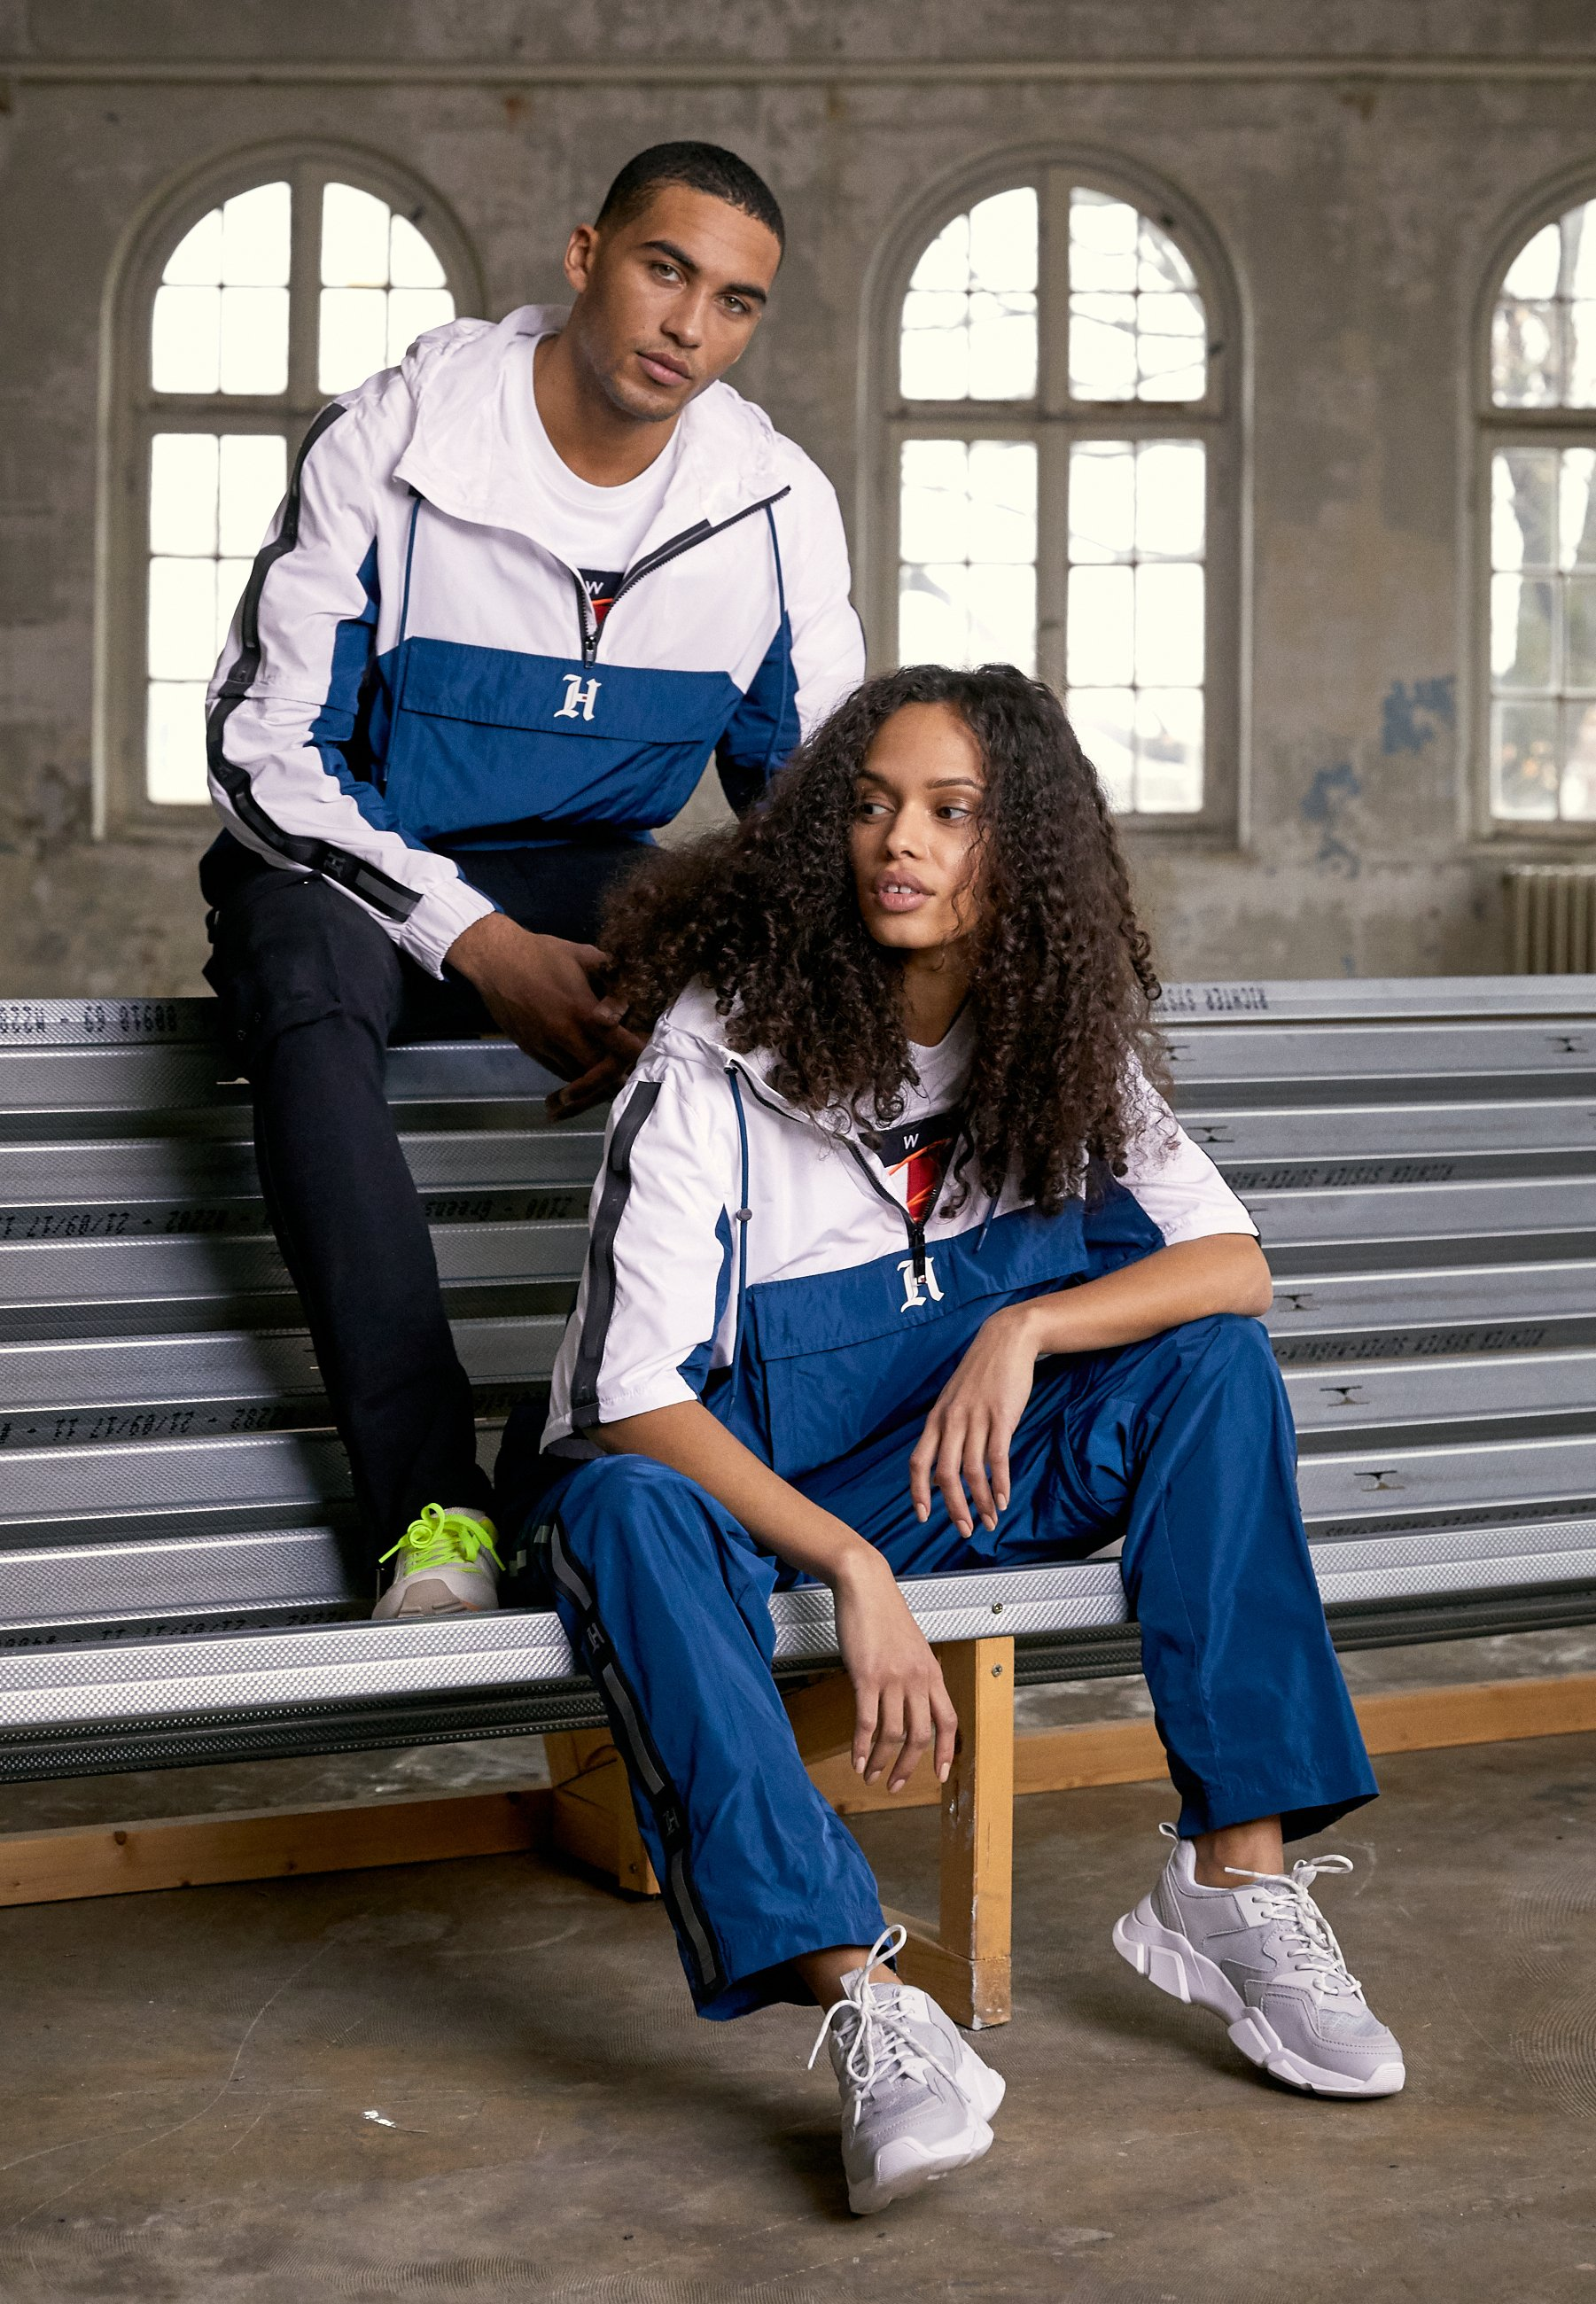 Tommy Hilfiger Lewis Hamilton Pop Over Tracksuit Top - Tunn Jacka White